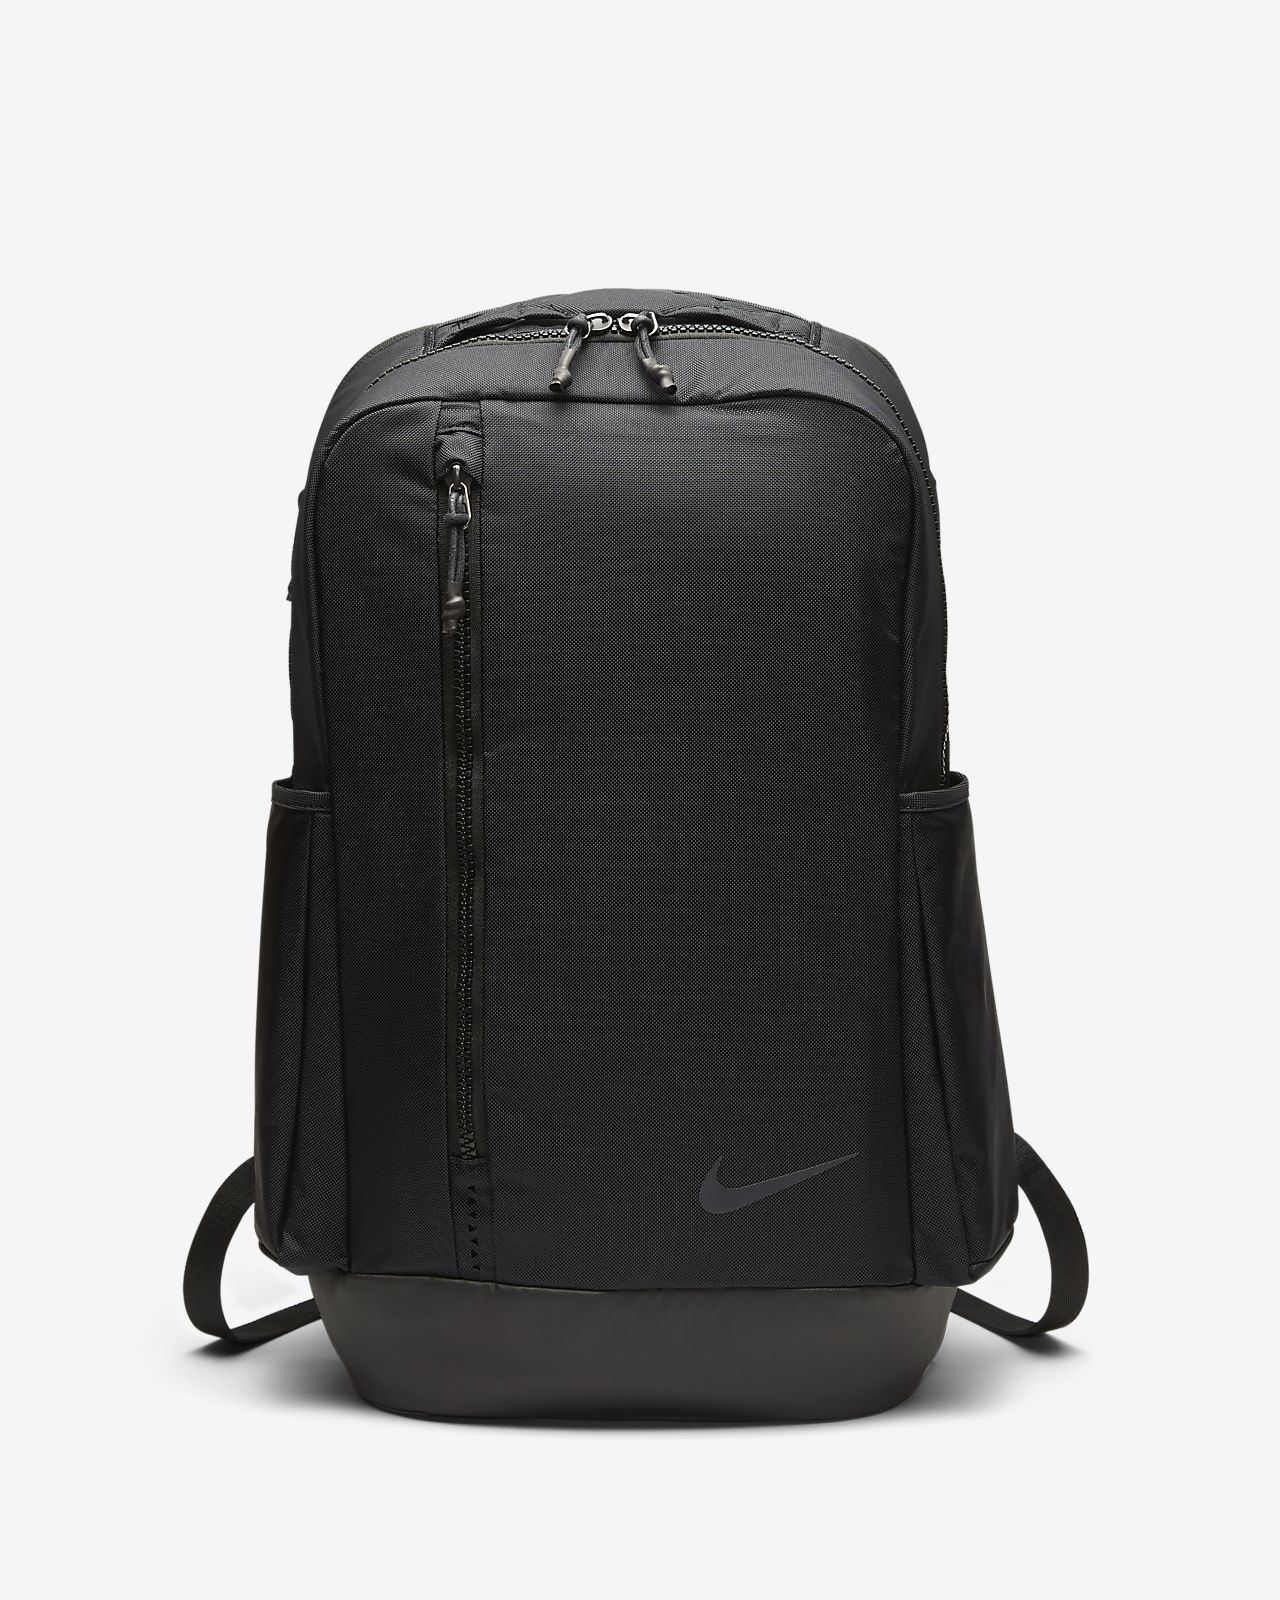 afdd94c779c6 Nike Vapor Power 2.0 Training Backpack. Nike.com GB